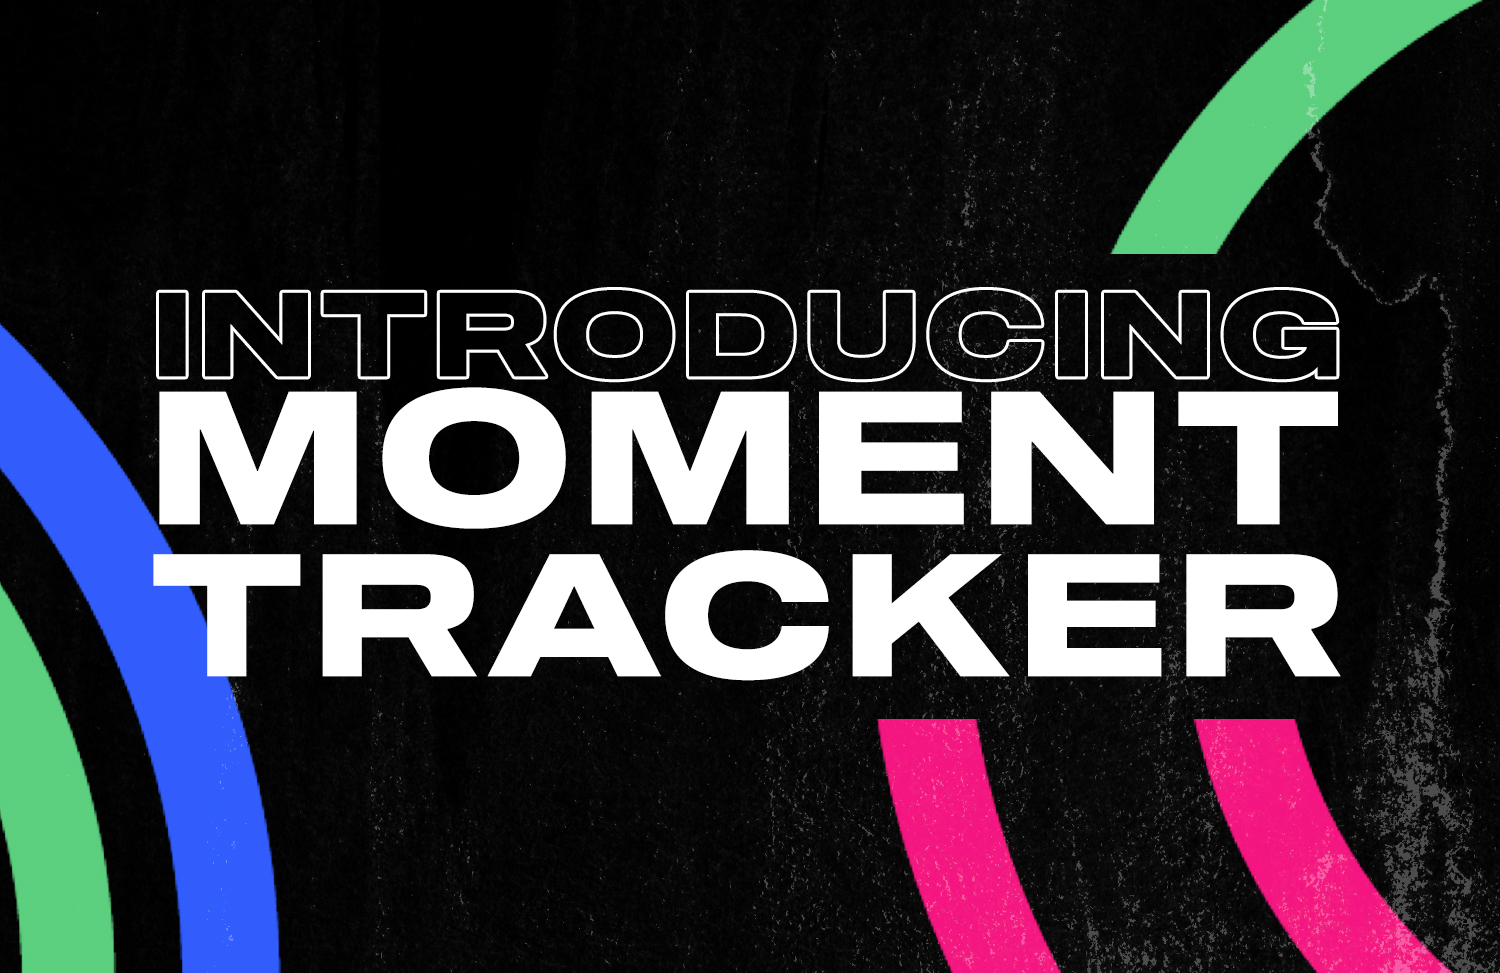 A new feature to track Moments